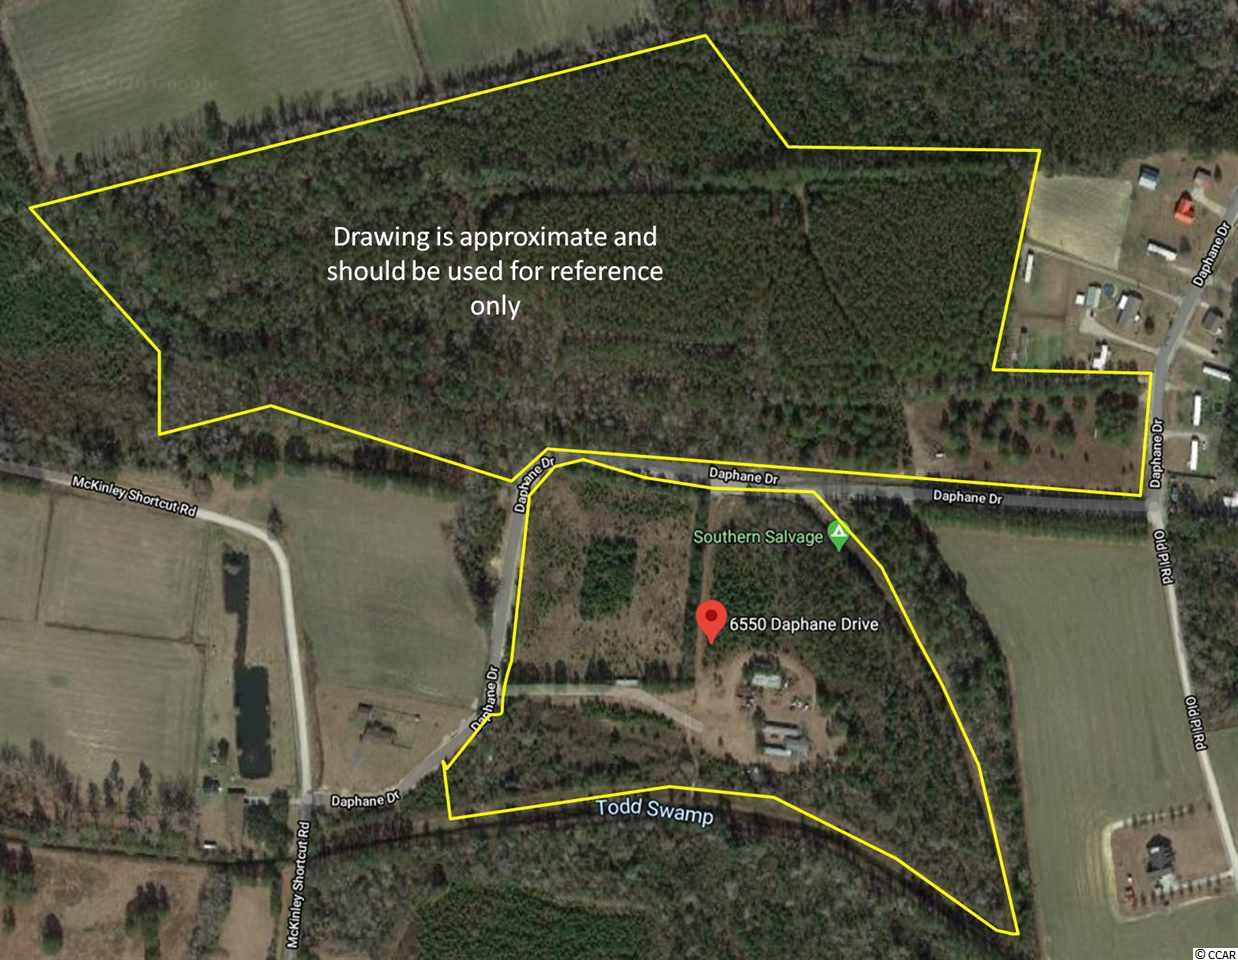 There are (7) 1/2 acre lots available zoned as MSF 14.5 for residential use of all collective structural categories, stick built, modular, andmanufactured. Public Water/Sewer Available. NOT IN A FLOOD ZONE. Easy access to area beaches and amenities convenientlylocated less than a mile from the Highway 905/Highway 22 Junction. Excellent Tractfor residential community, RV Resort, Industrial,Commercial, Recreational uses and the like. The multi acre lots are Zoned PDD allowing for mixture of residential, commercial, office,industrial uses on this single site. Prime Development Tract other lots available totalling approx 50 acres. PDD parcels have beenapproved for Campground/RV Resort use but can be rezoned.